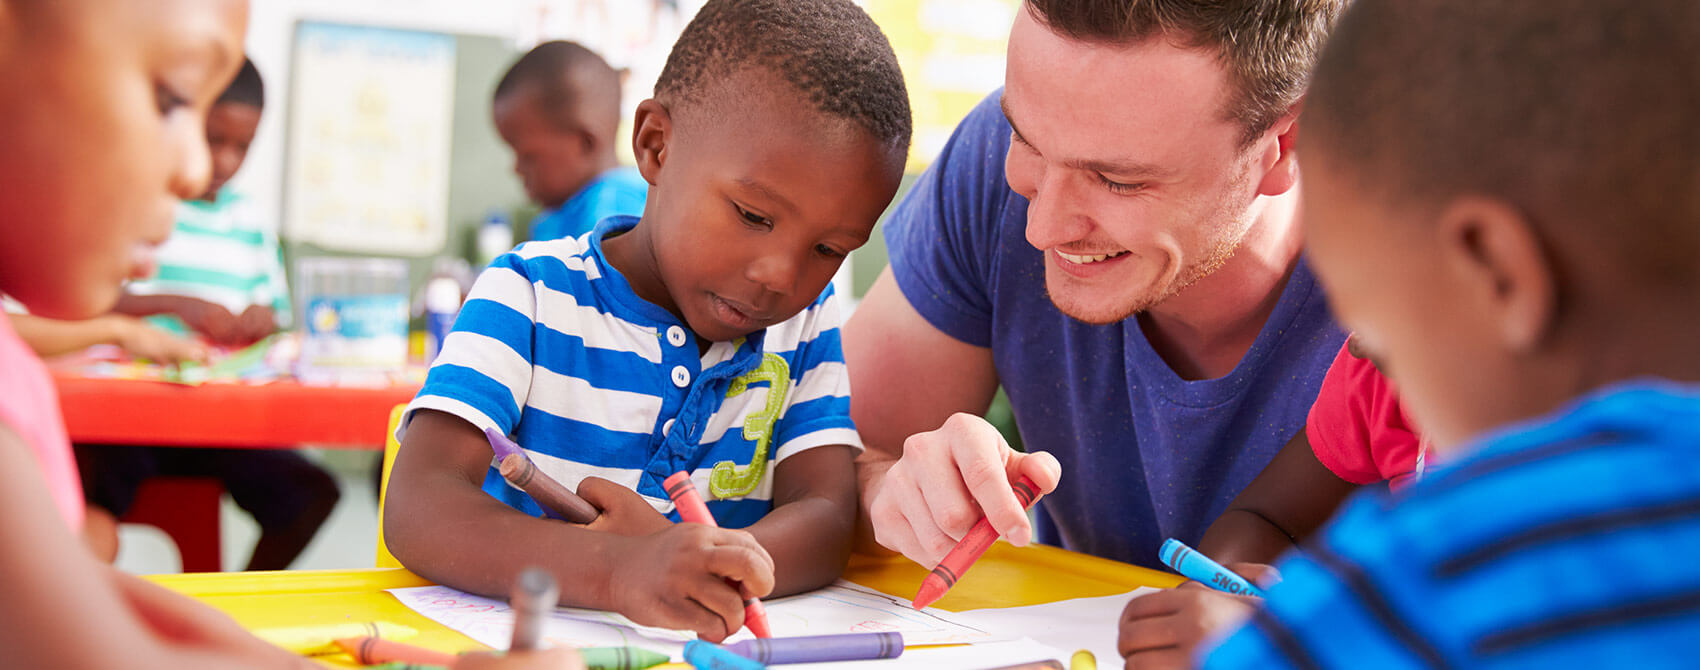 A young male teacher works with pre-k students who are coloring.